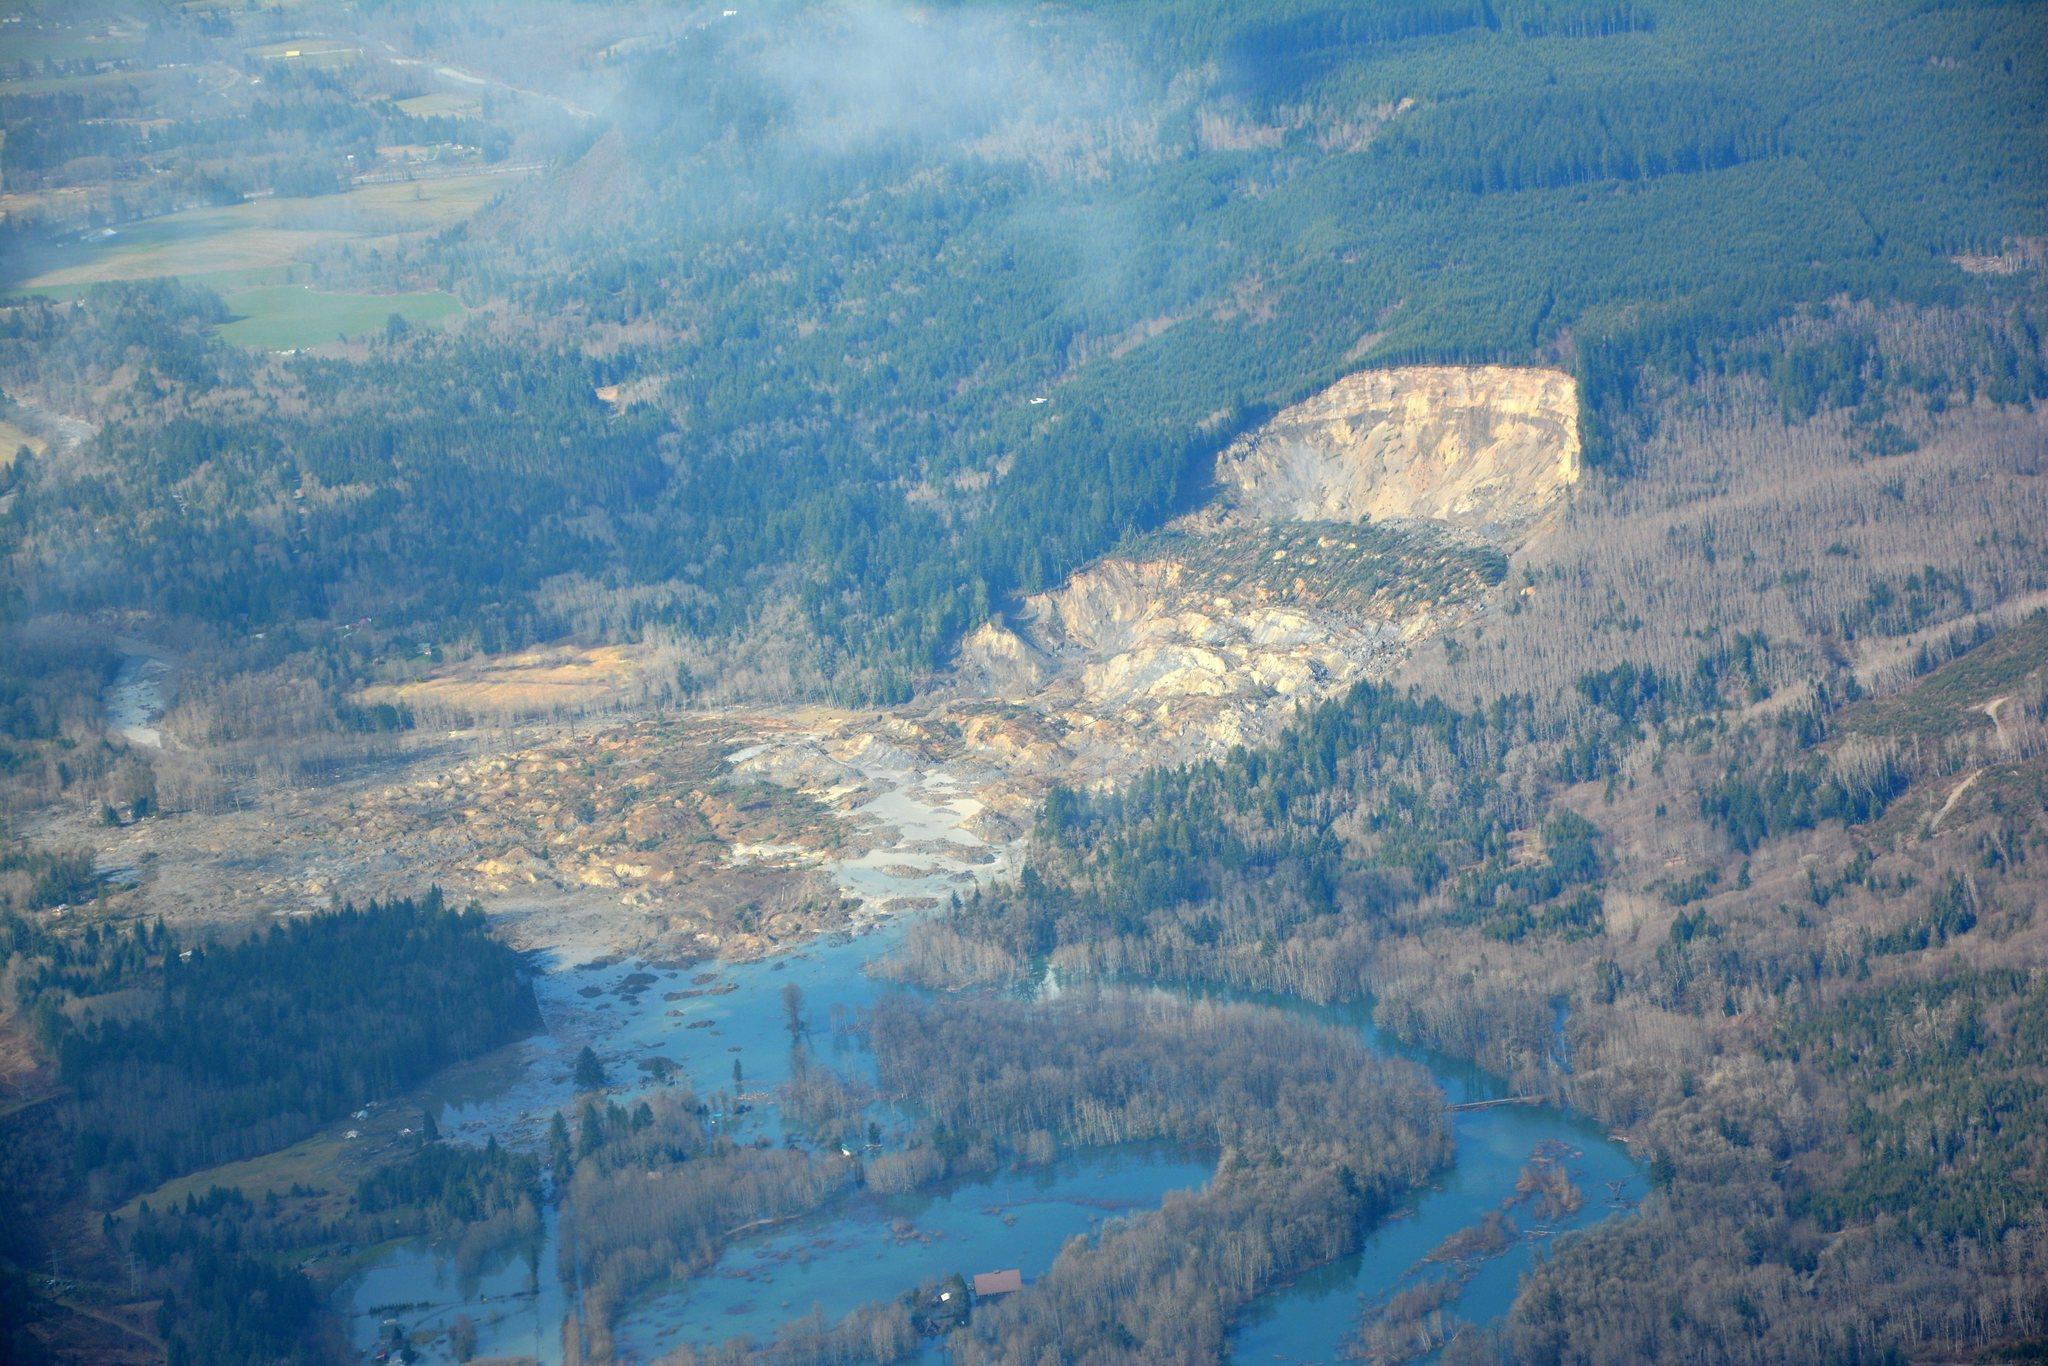 Handout image released by the Washington State Department of Transportation showing the scene of the mudslide.